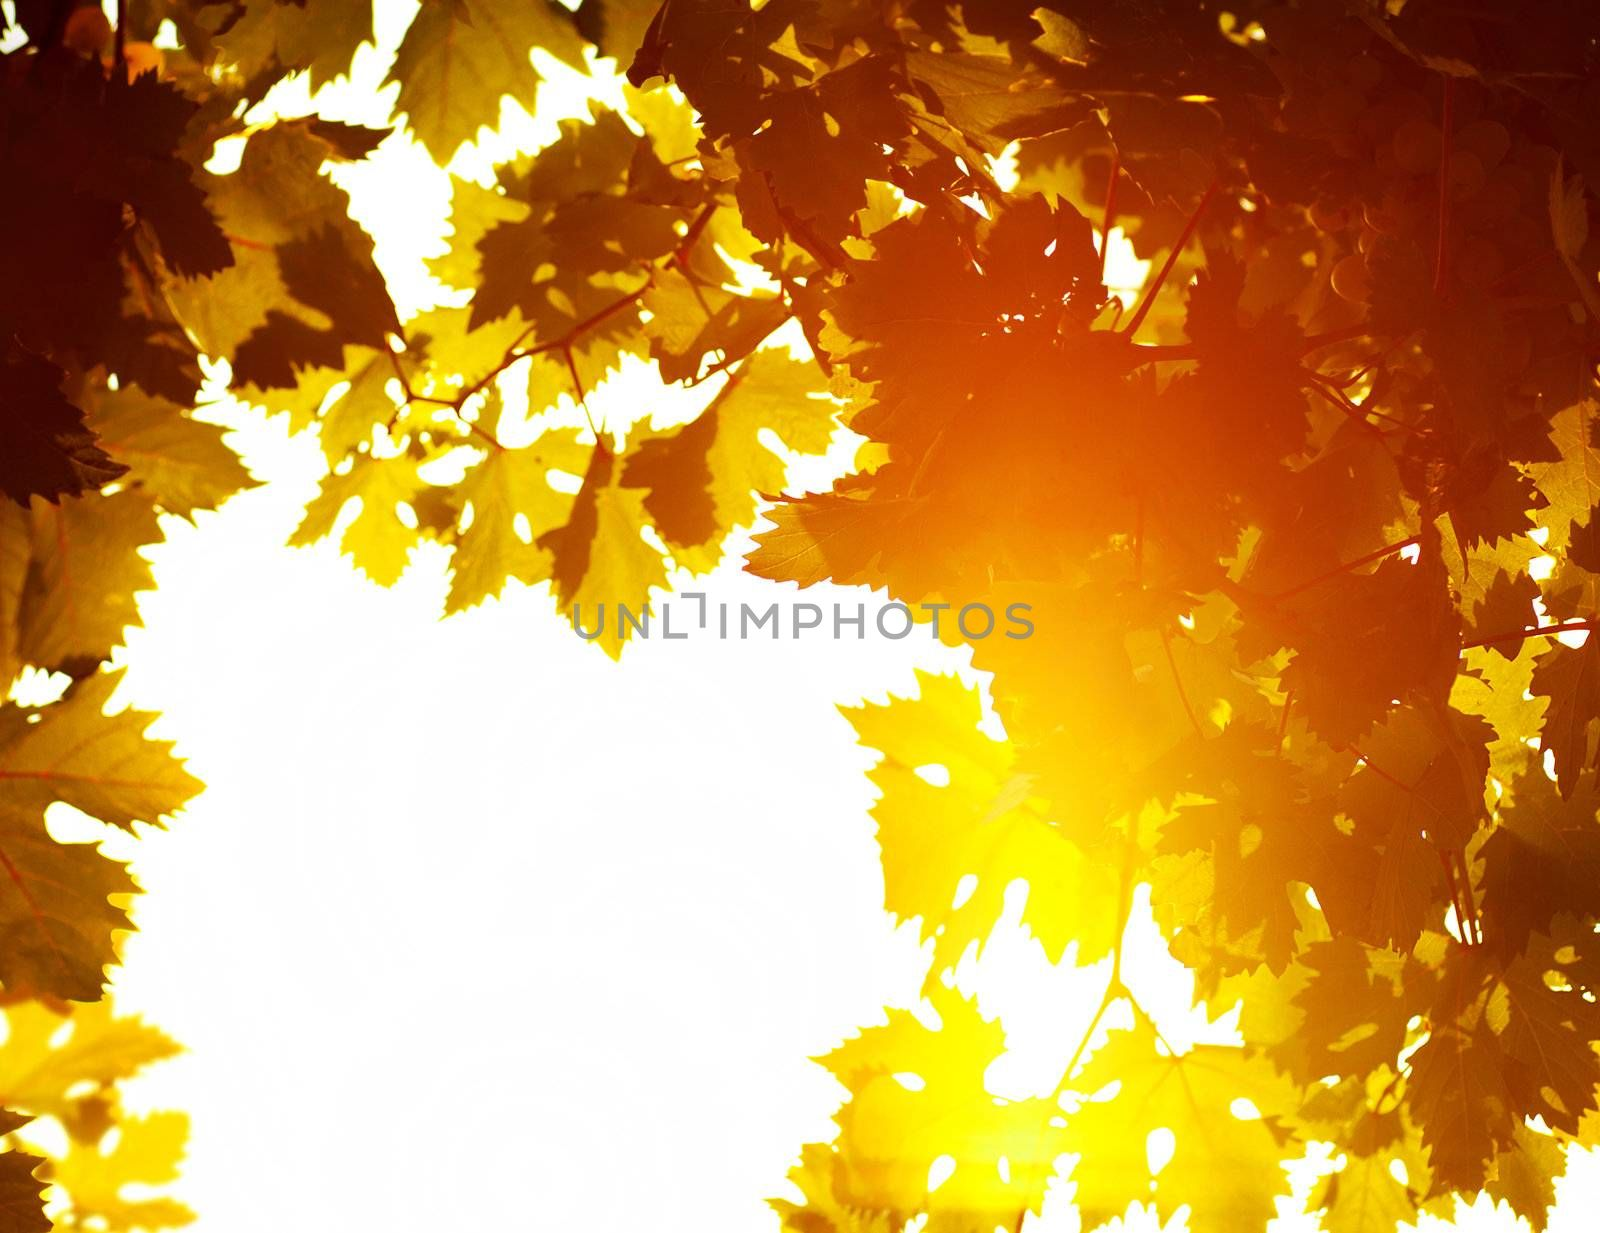 Autumn leaves frame, photo of sunlight through fresh grape leaves, natural background, orange autumnal foliage border, winery industry, copy space, trees in the fall and bright yellow sun beam